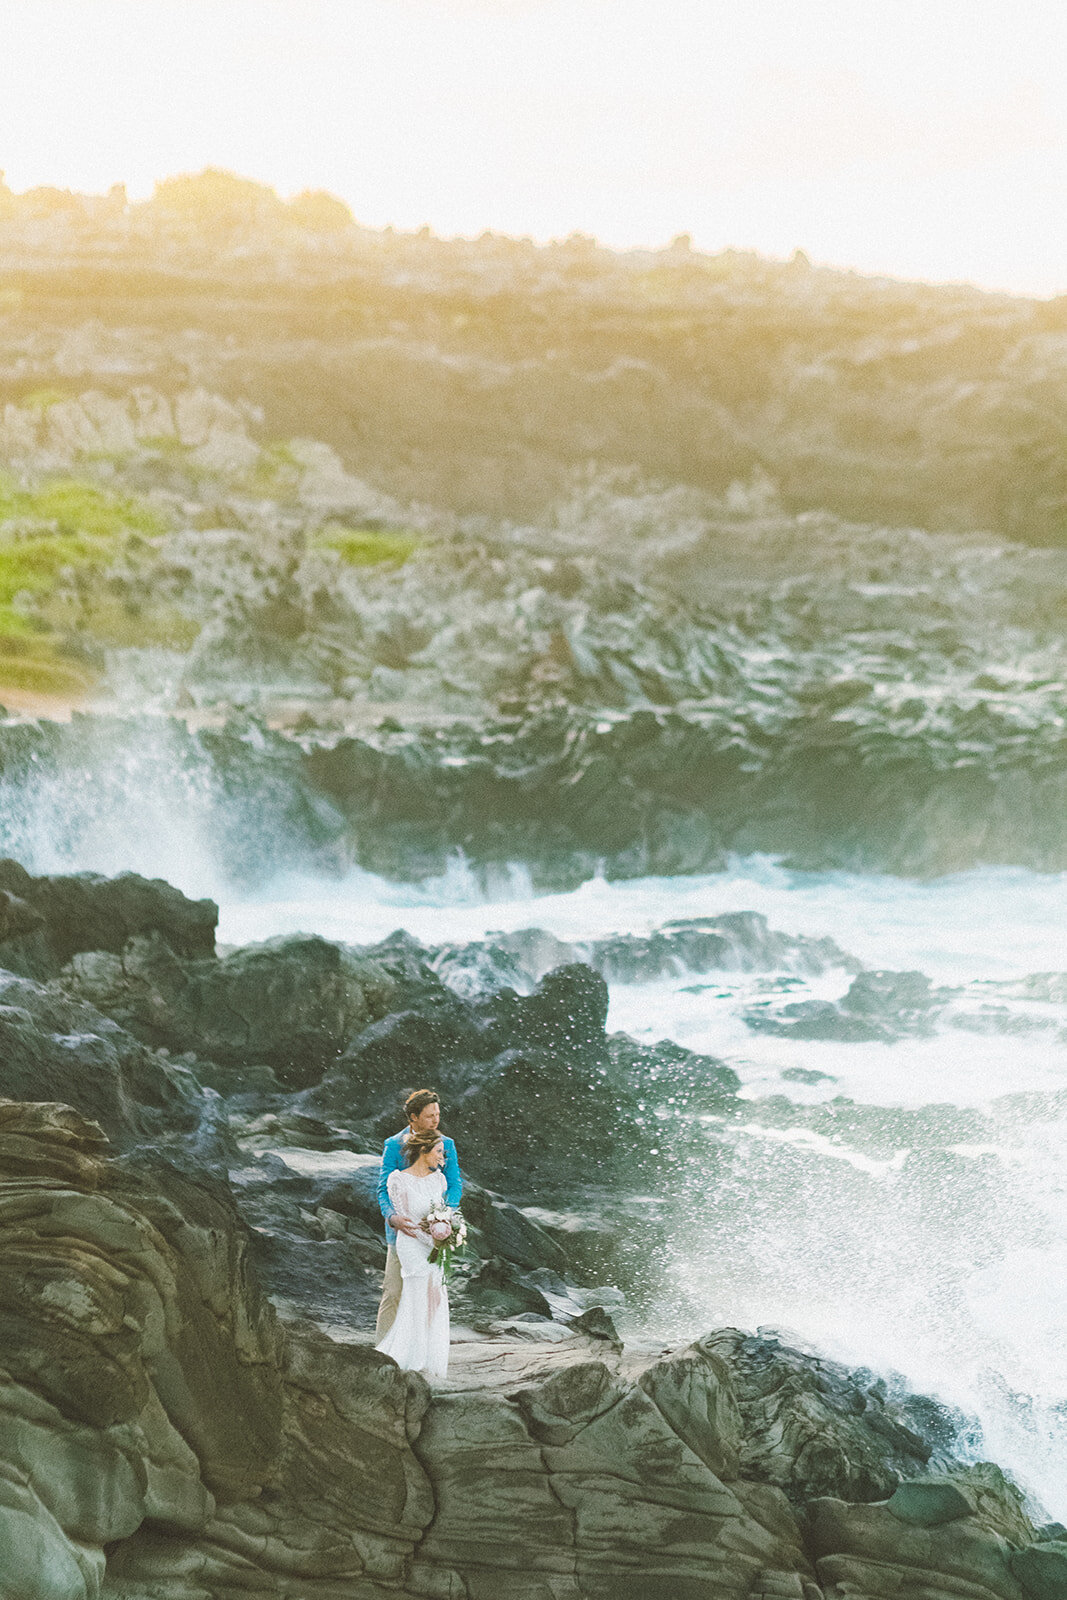 Maui wedding photographer20181126_0089.jpg